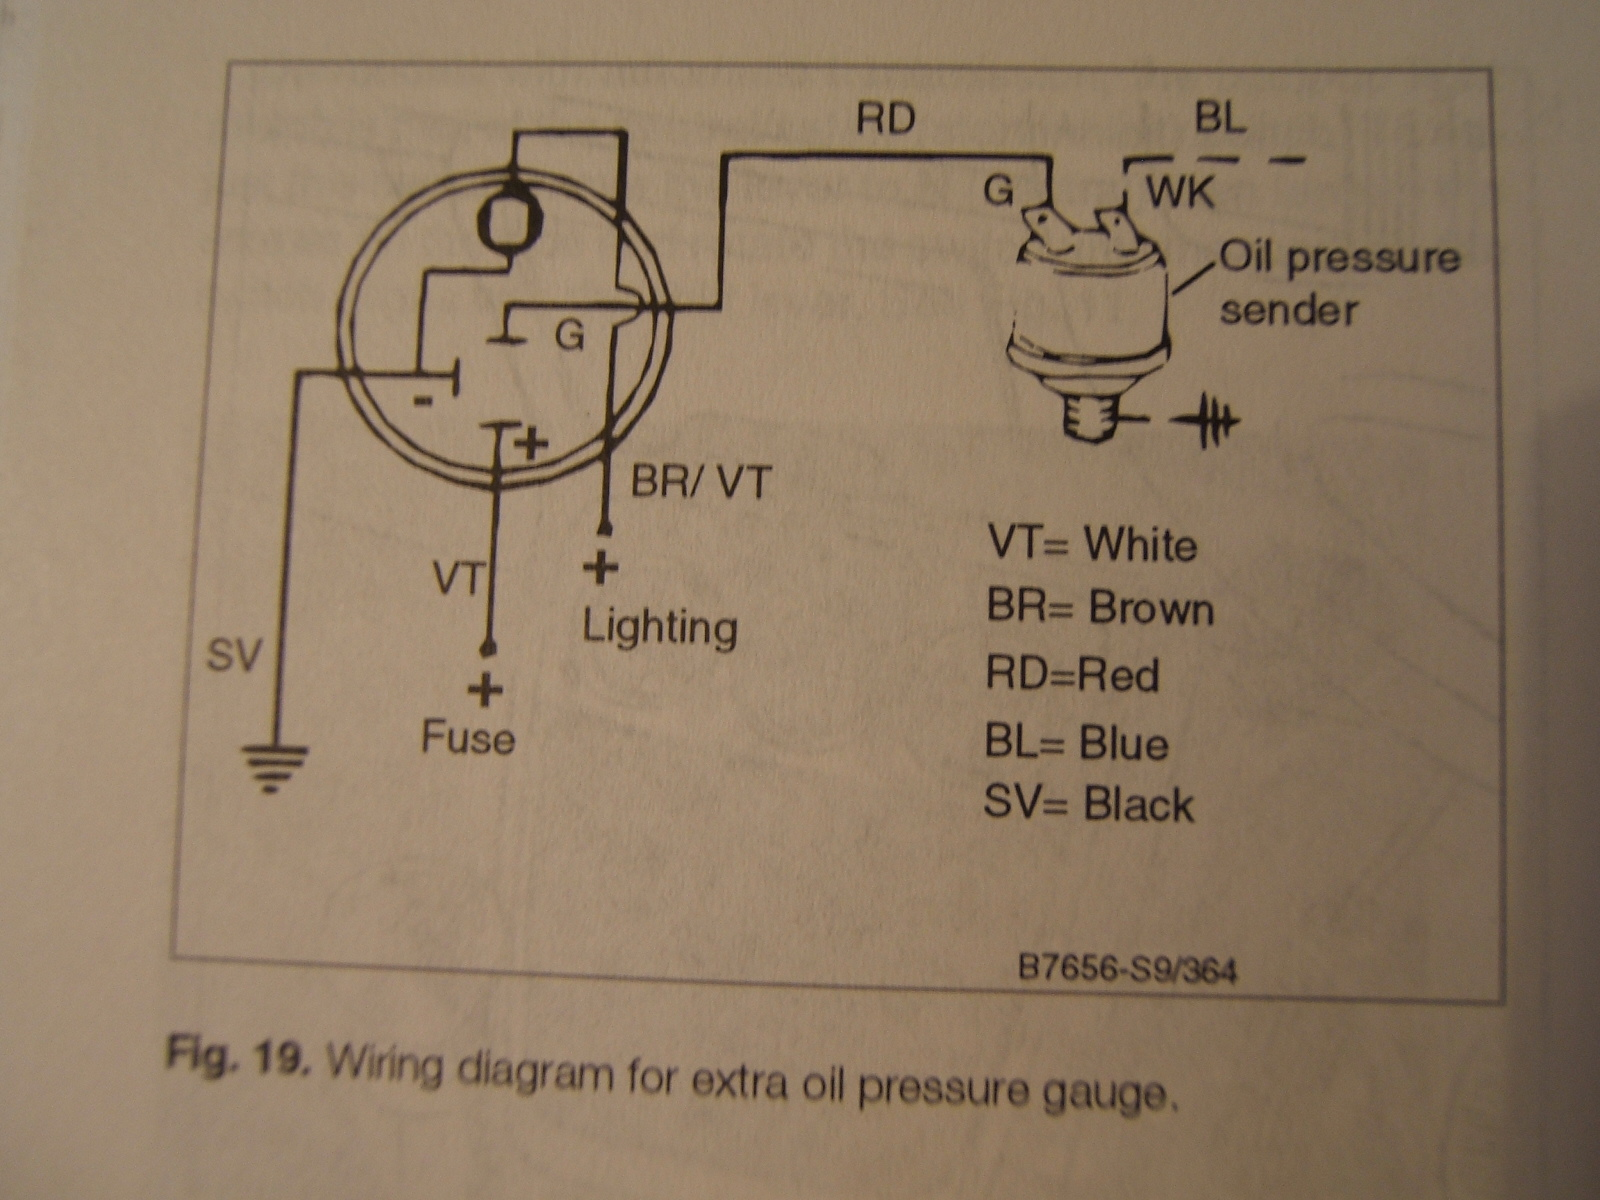 vdo electric oil pressure gauge wiring diagram hedgehog skeleton senders diagrams